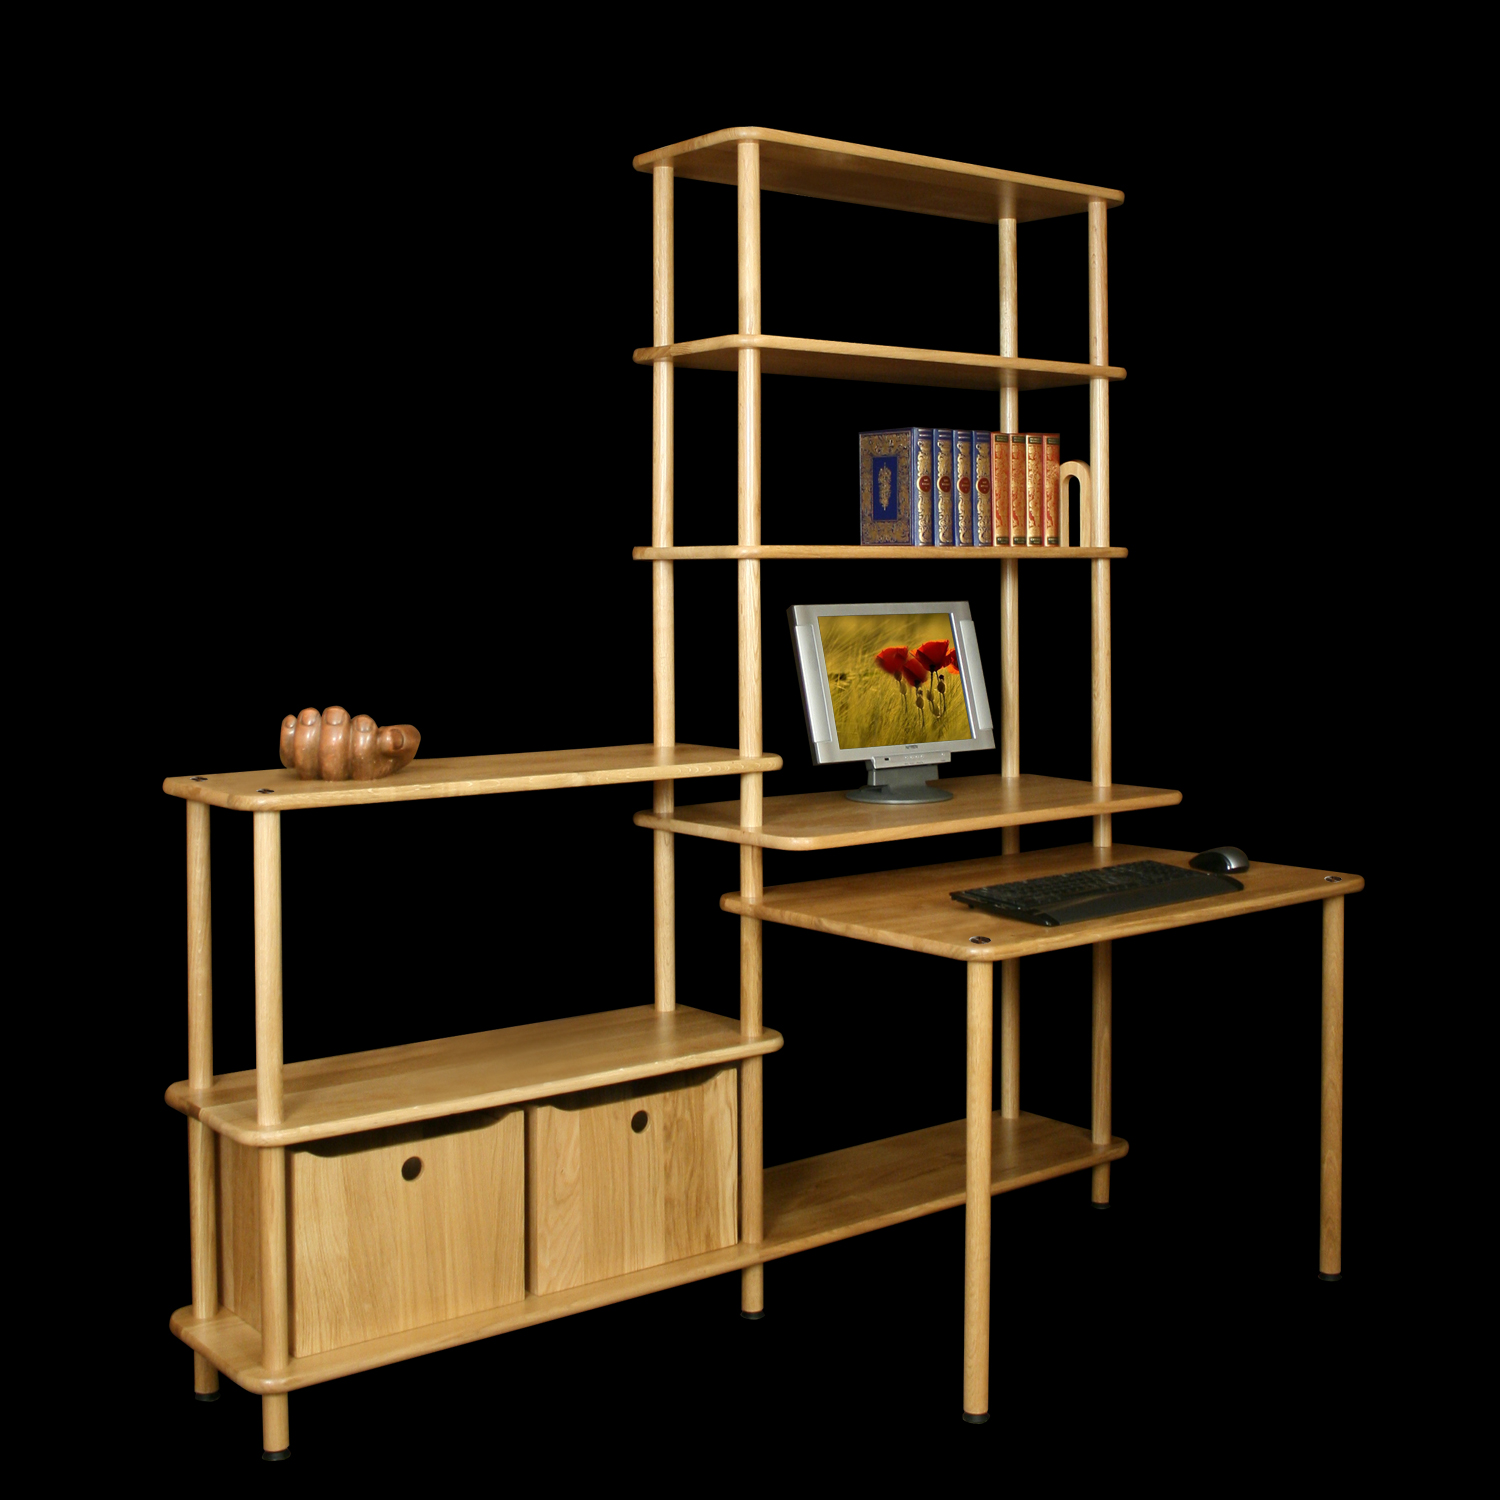 Etag re biblioth que en bois massif for Meuble bureau etagere